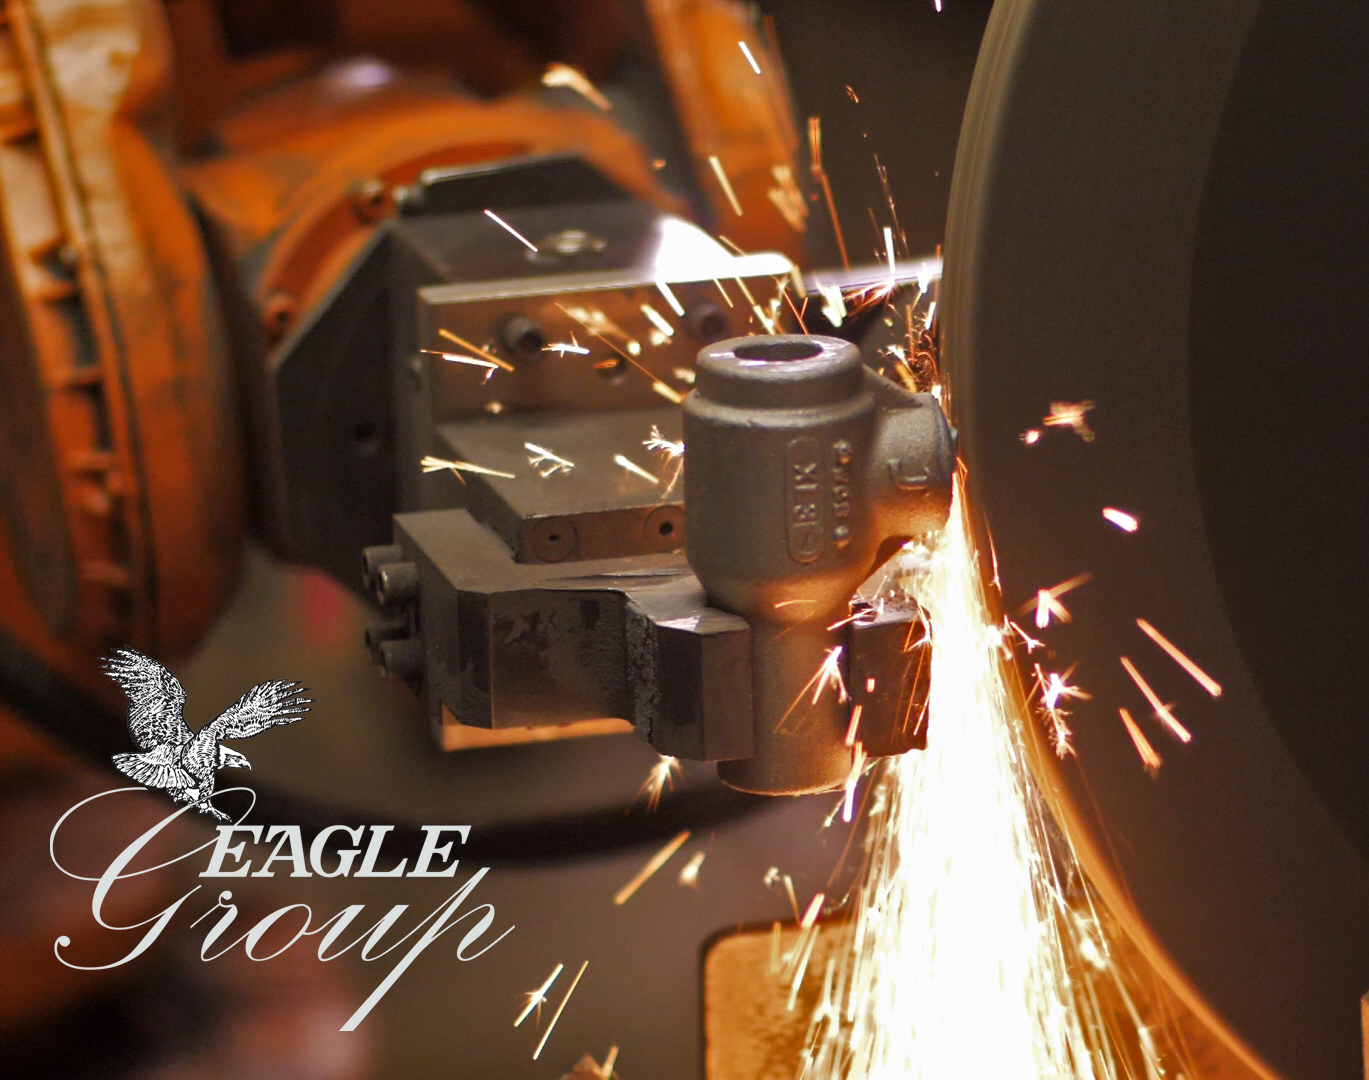 Robotics in Metalcasting: Robot Grinding Cell at Eagle Alloy